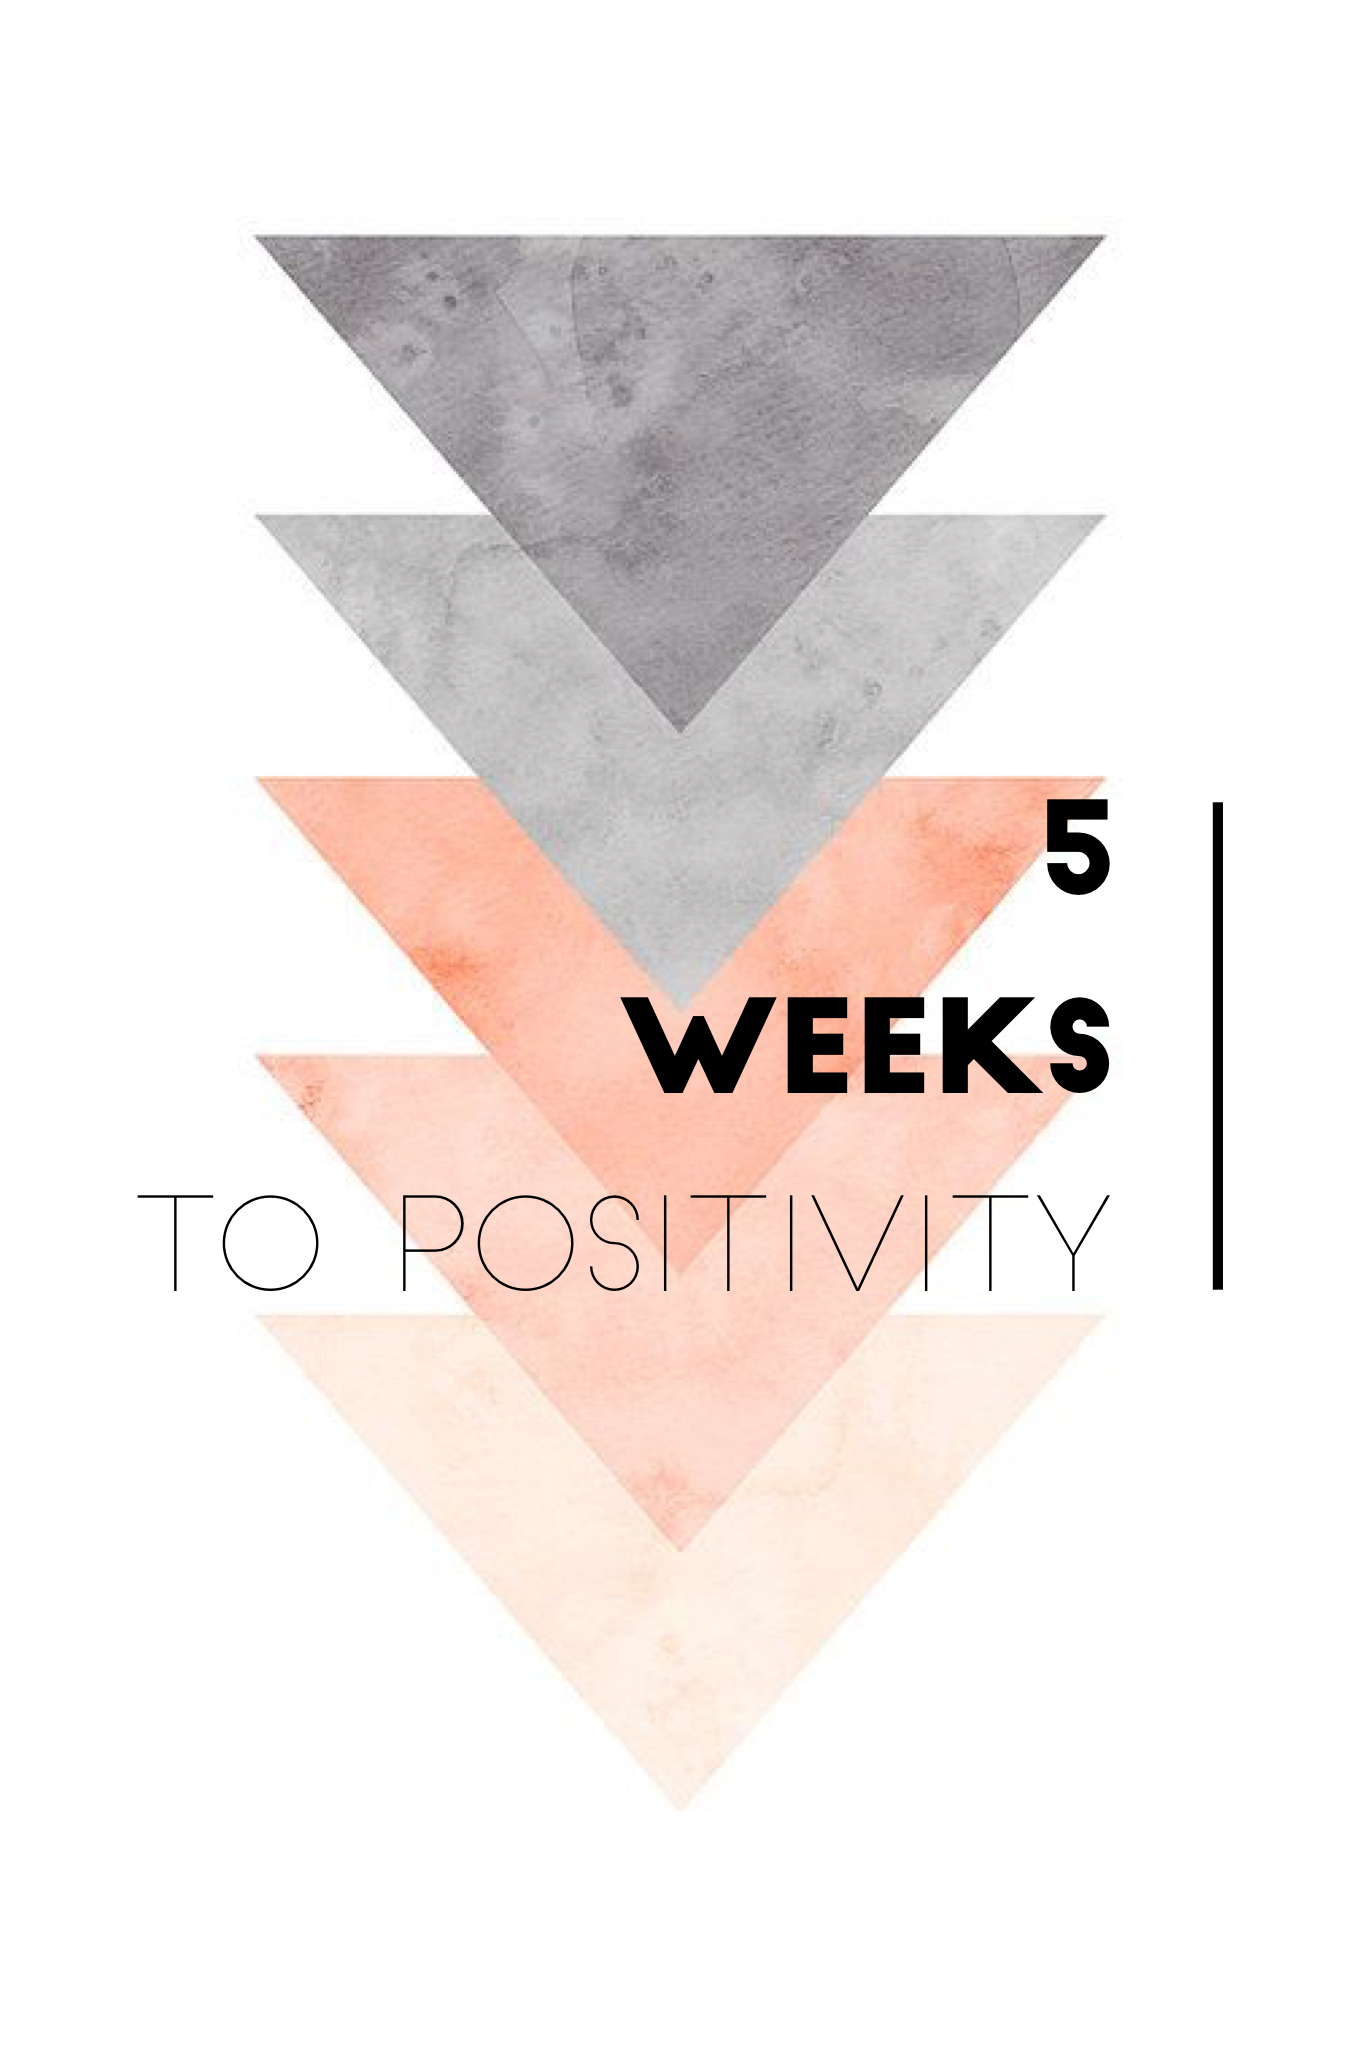 A 5 Week Email Course To Improve Your Positivity With